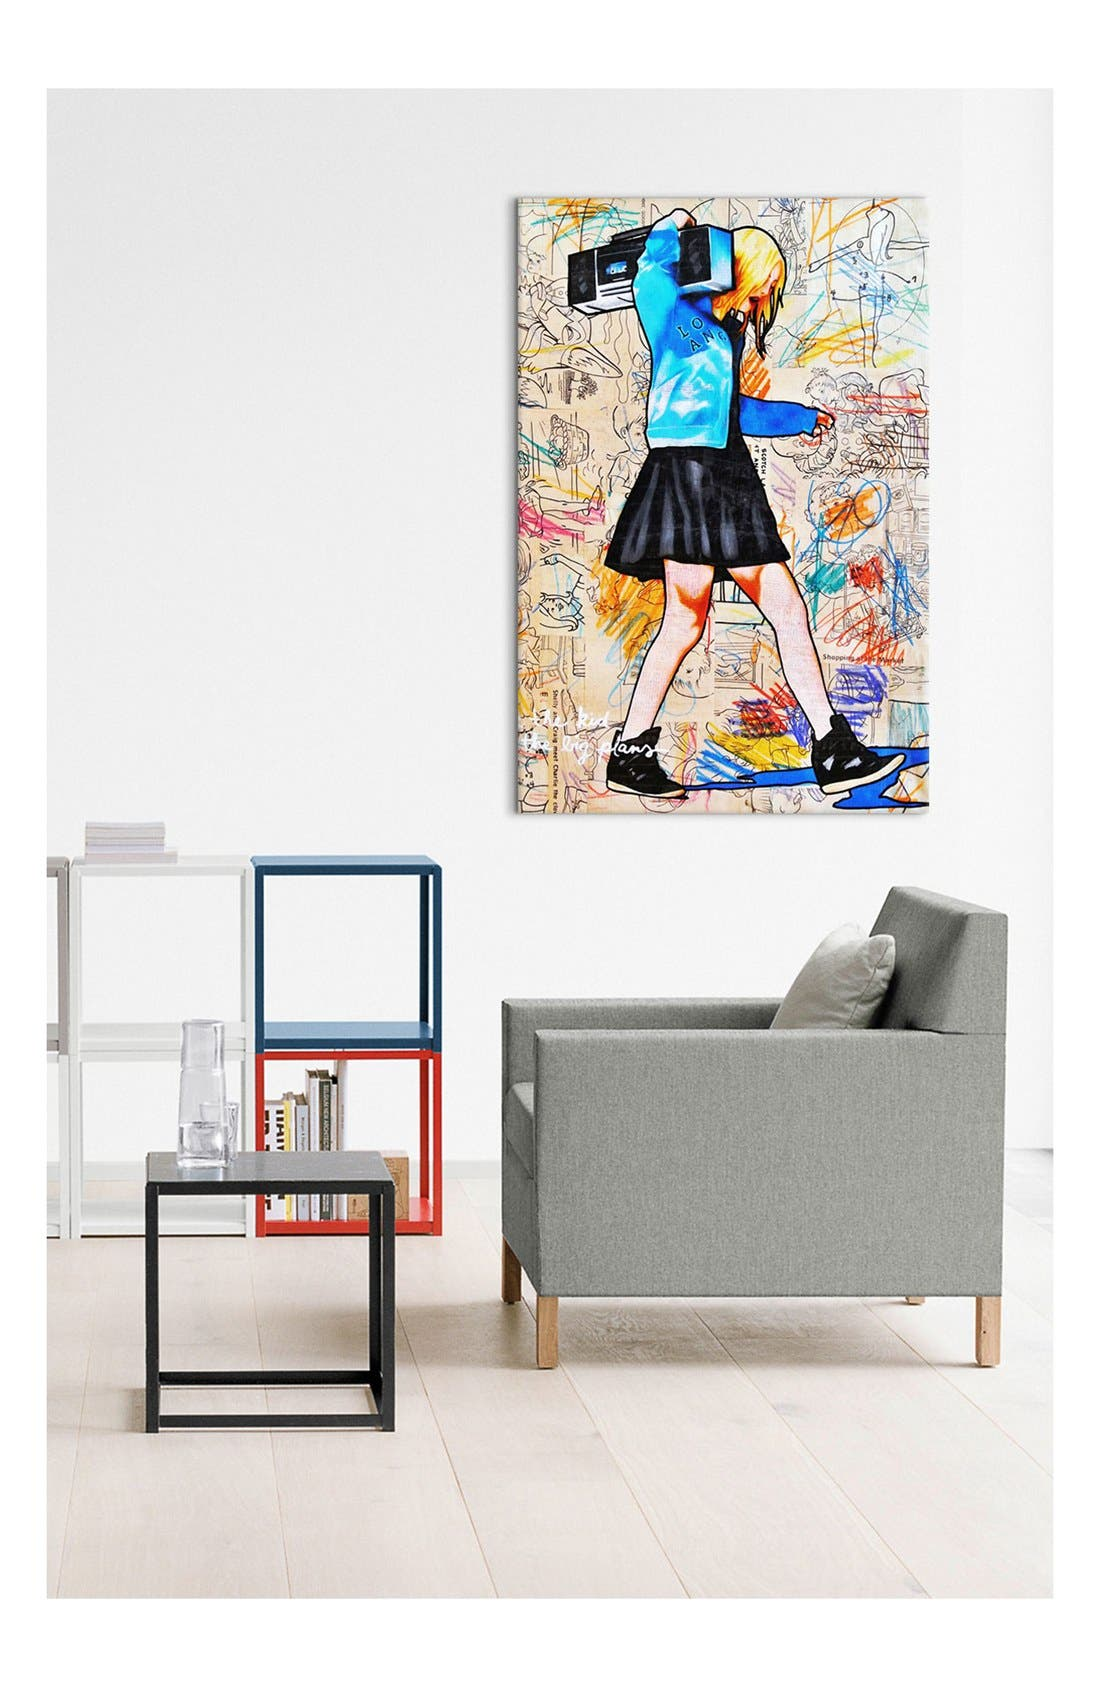 'I'll Be the Kid with the Big Plans - Annie Terrazzo' Giclée Print Canvas Art,                             Alternate thumbnail 2, color,